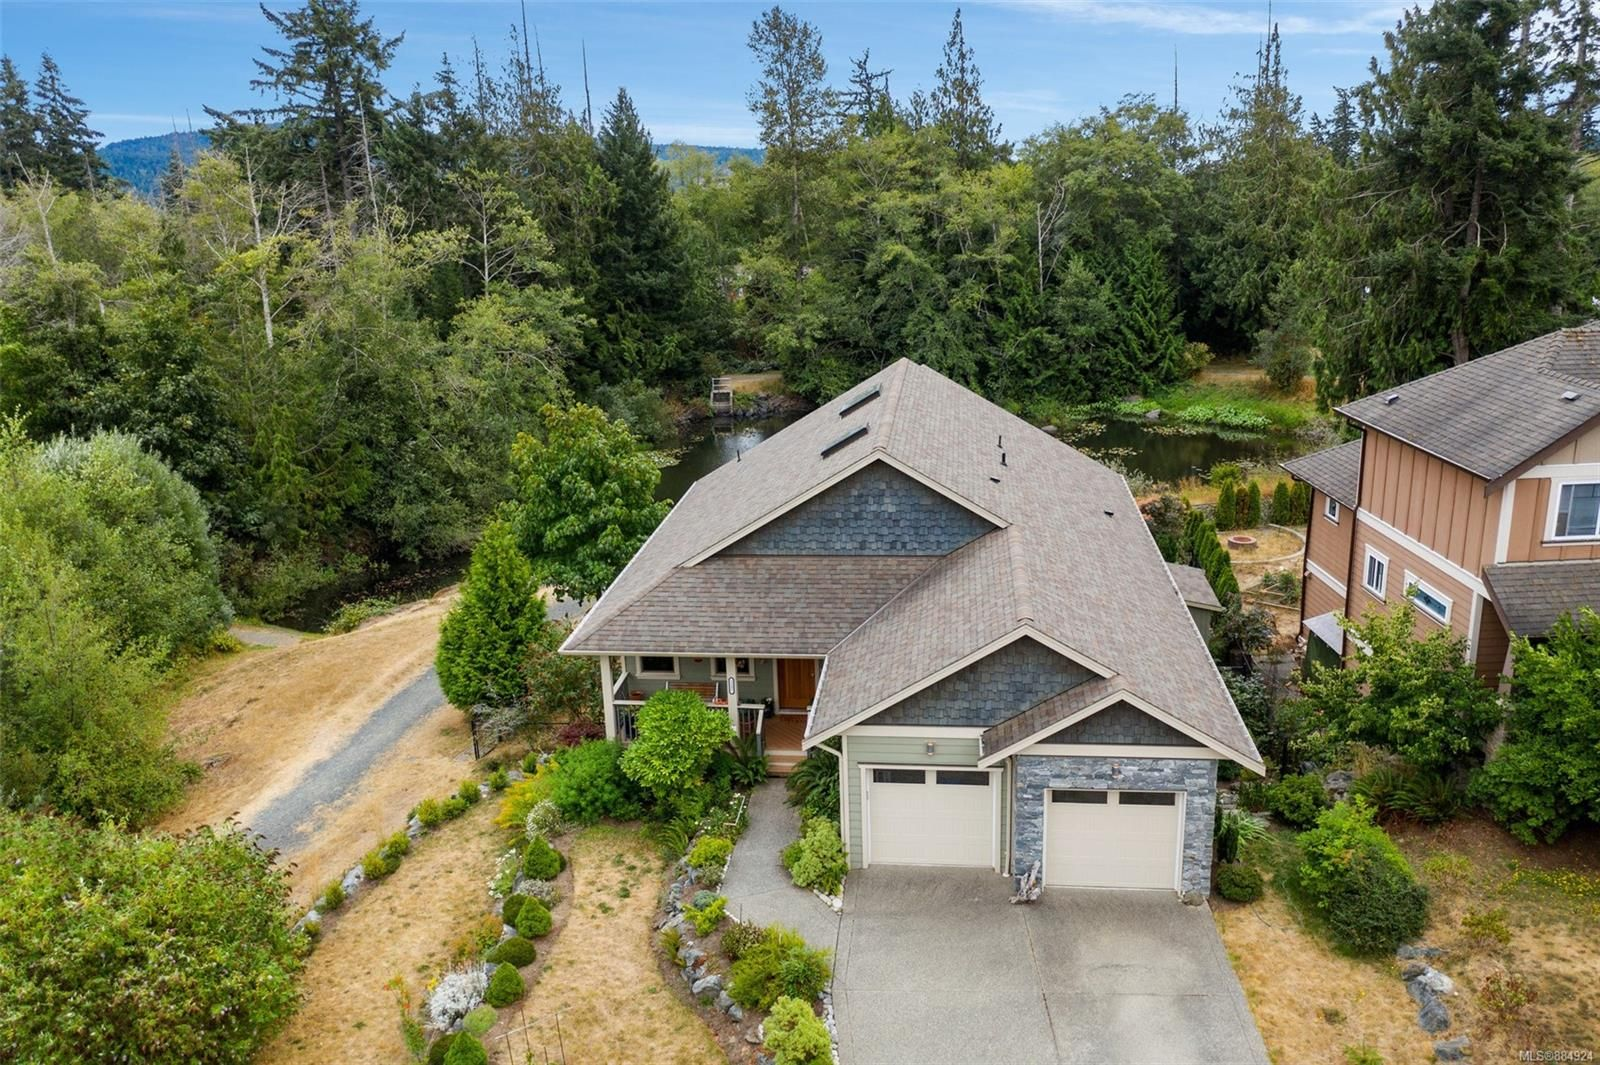 Main Photo: 2257 N Maple Ave in : Sk Broomhill House for sale (Sooke)  : MLS®# 884924